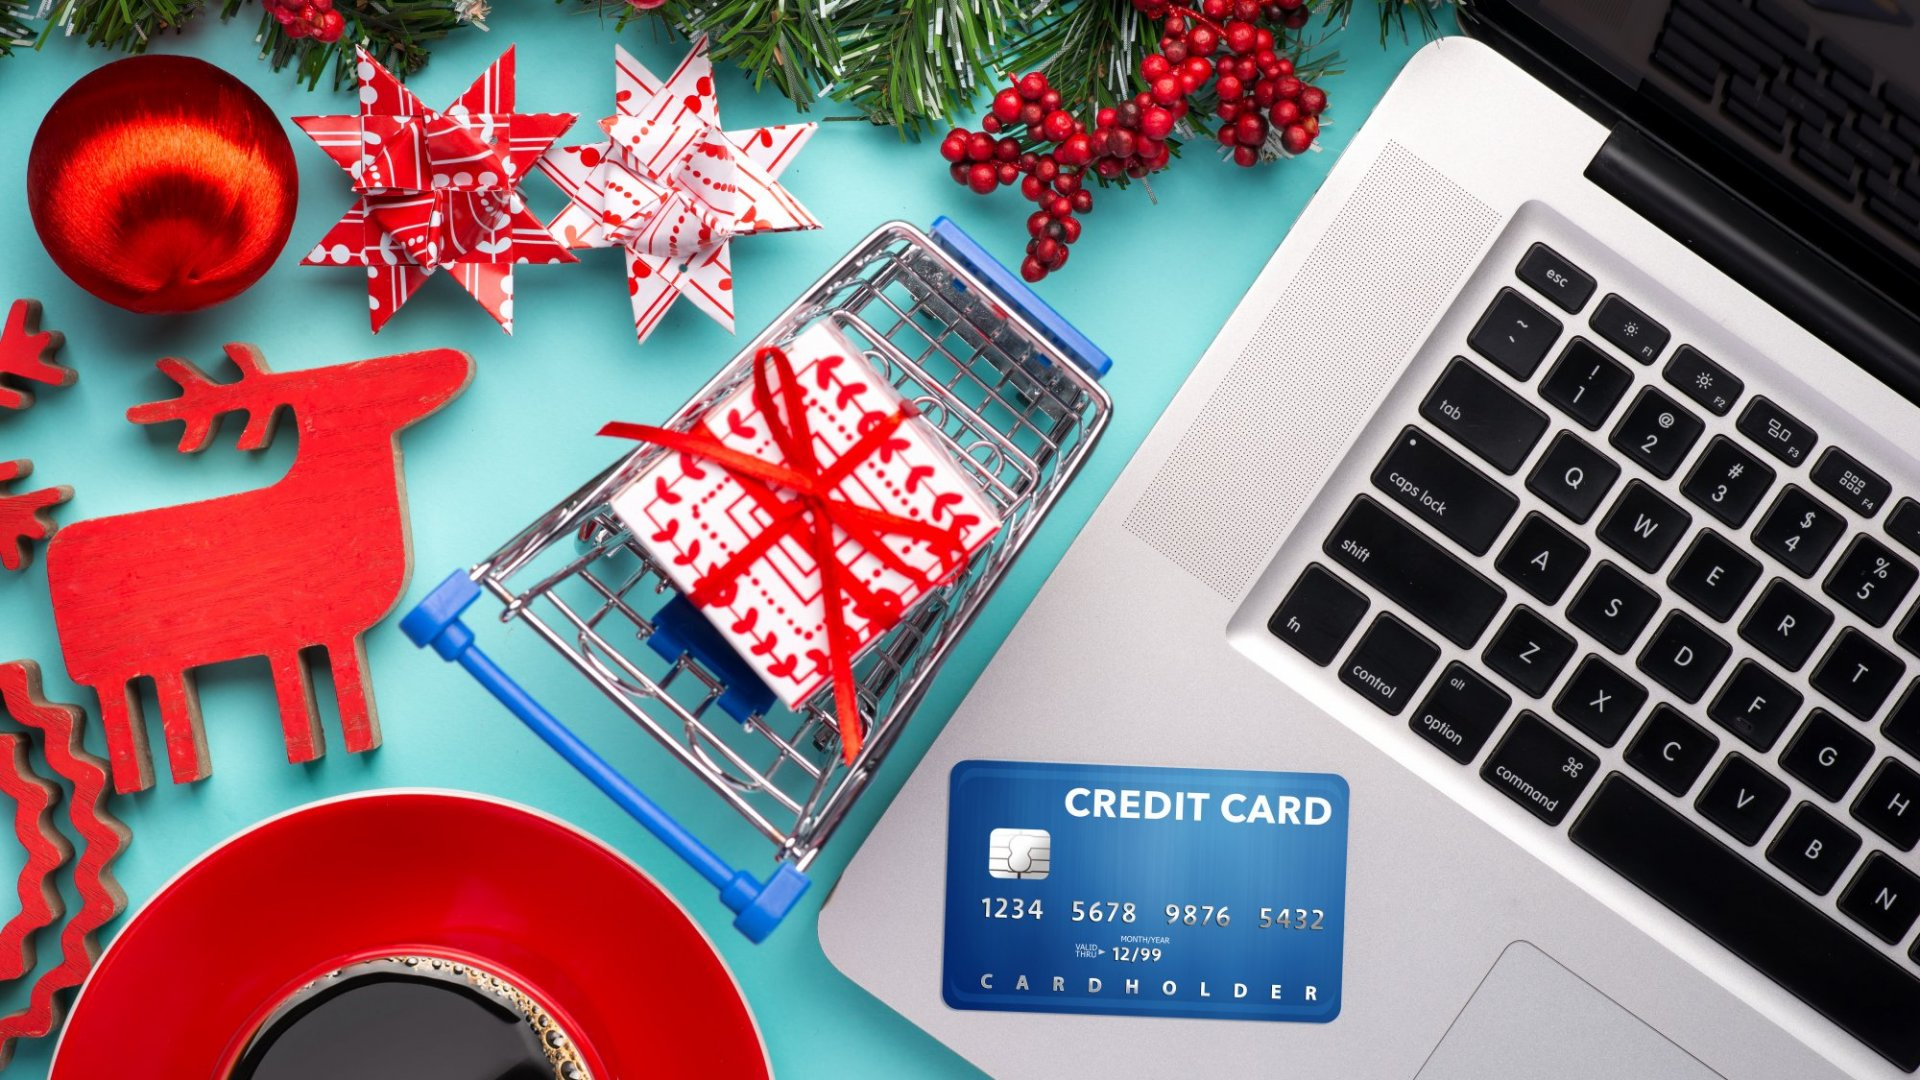 Connecting with Connected Consumers this Holiday Season